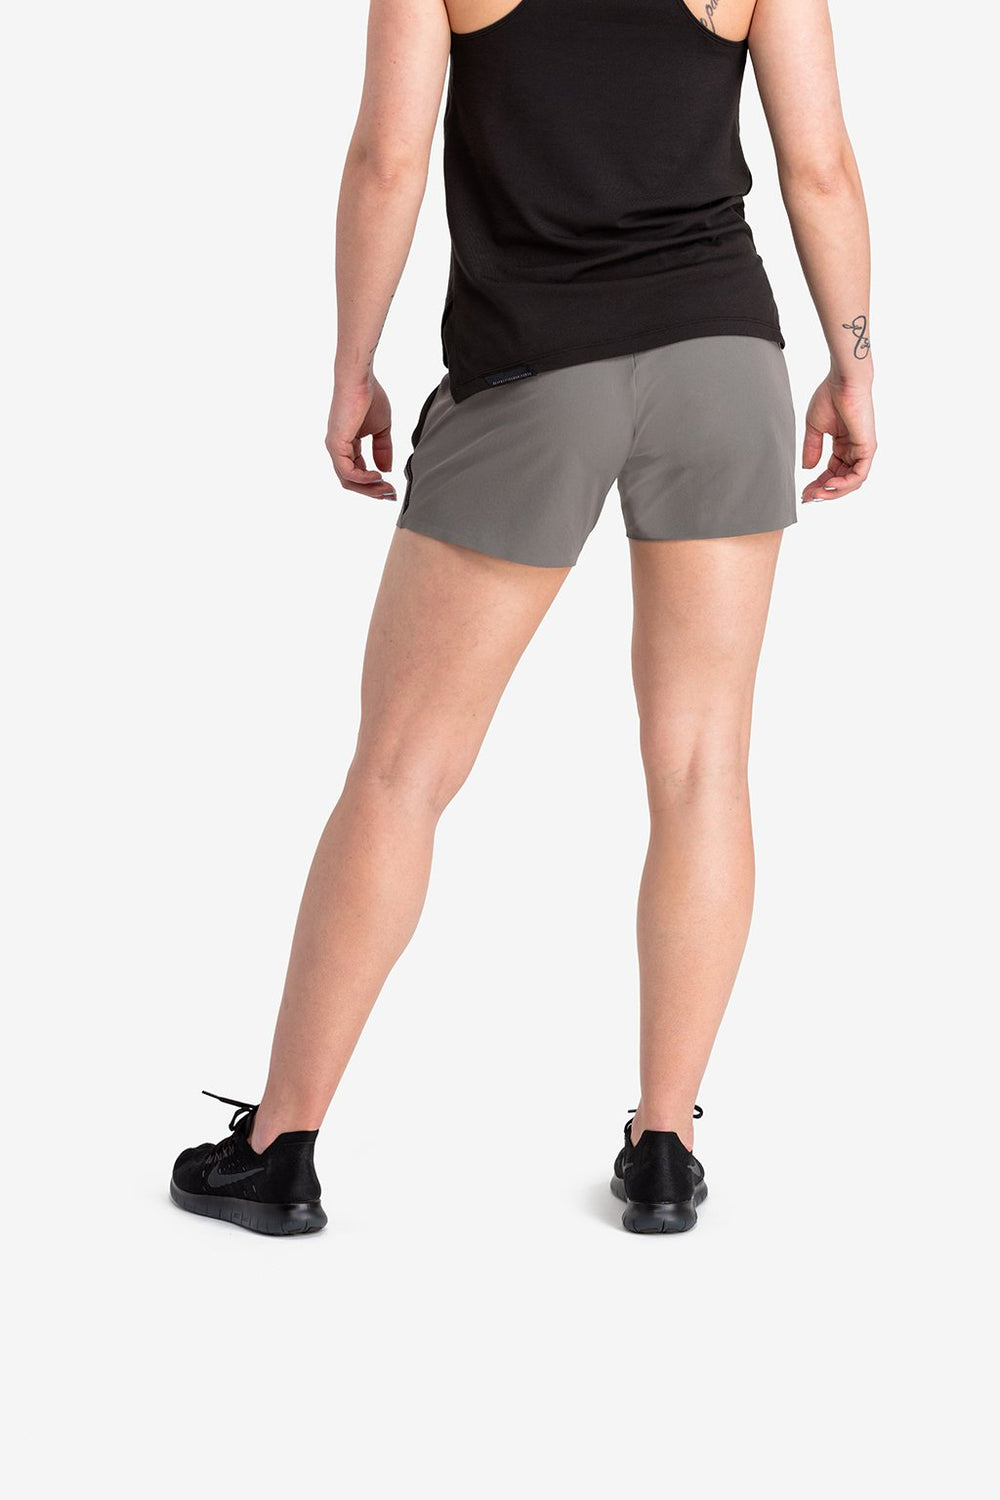 RYU Womens Power Short in Granite